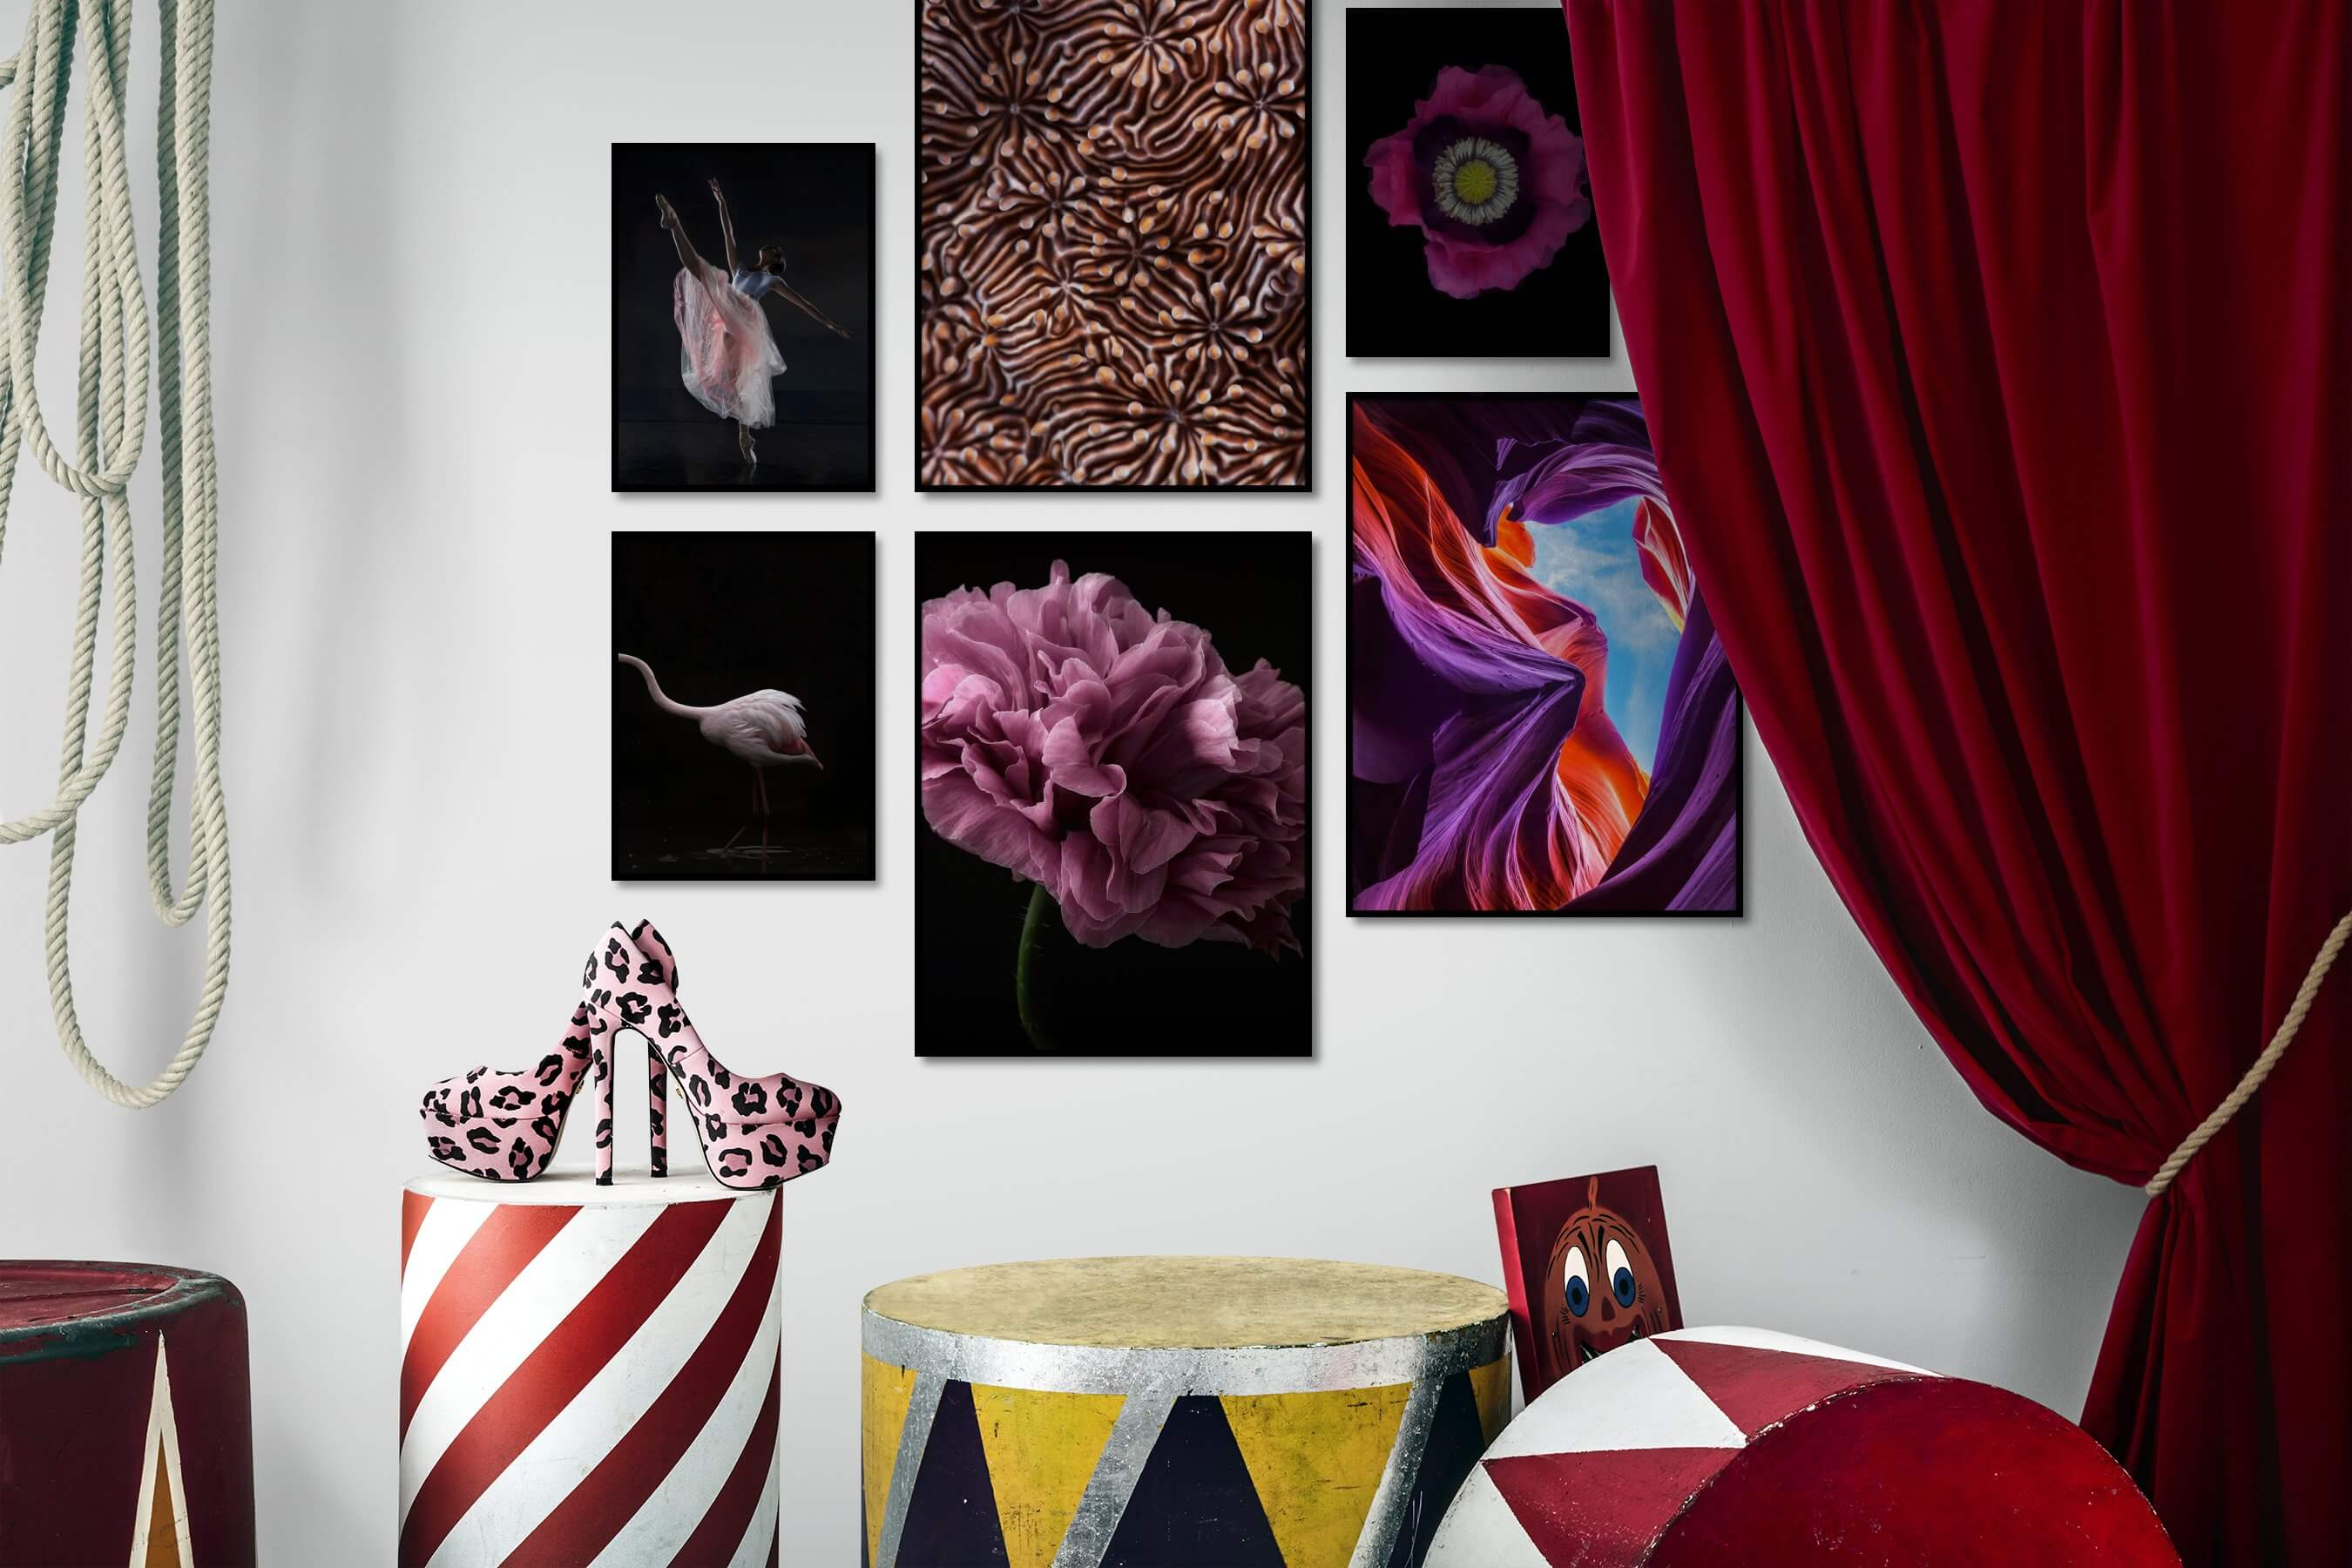 Gallery wall idea with six framed pictures arranged on a wall depicting Fashion & Beauty, Dark Tones, For the Minimalist, For the Maximalist, Nature, Animals, For the Moderate, Flowers & Plants, and Colorful